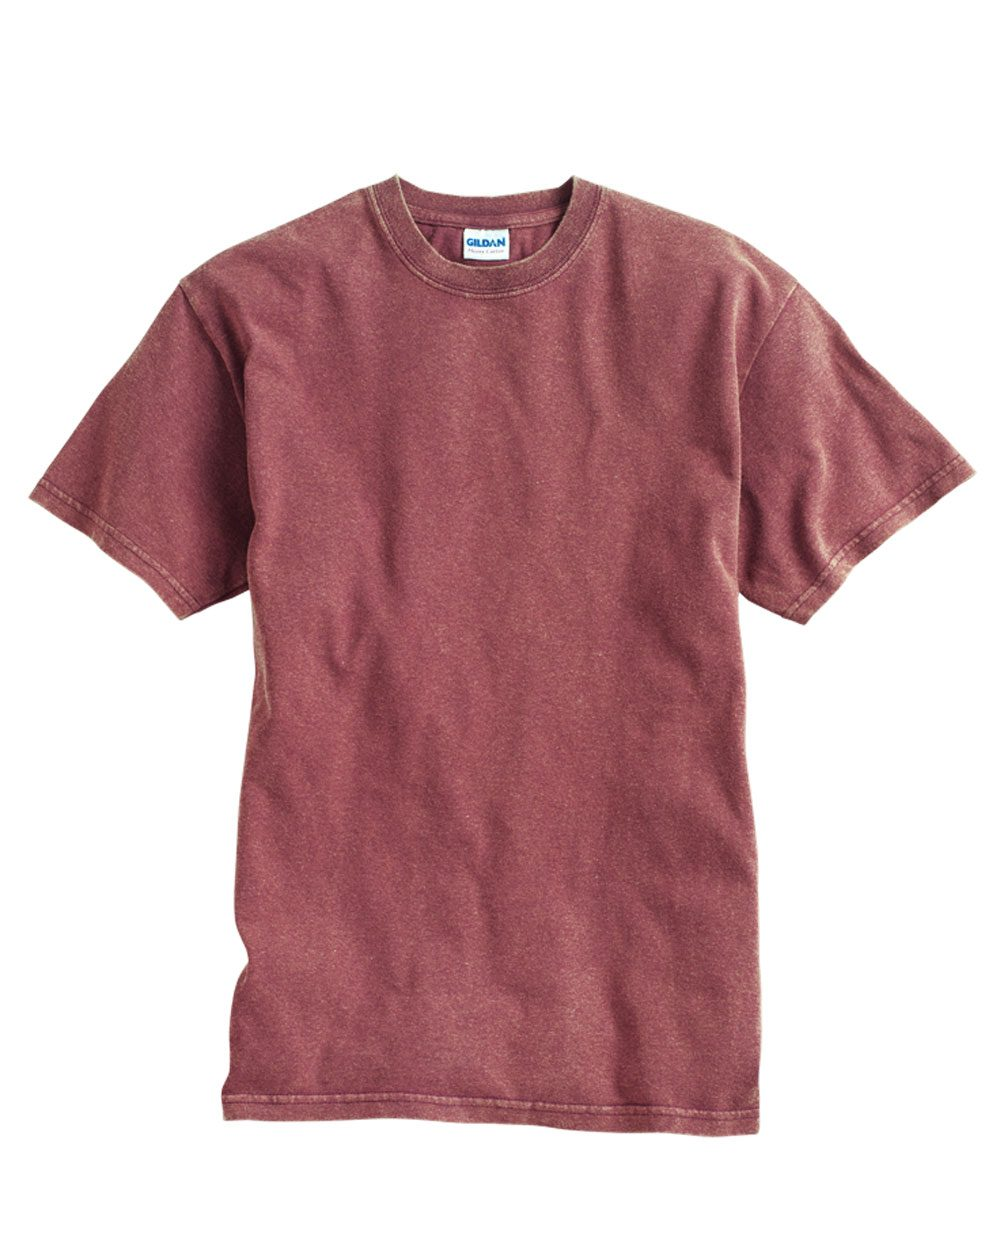 Tie-Dyed 200VW - Volcano Wash T-Shirt